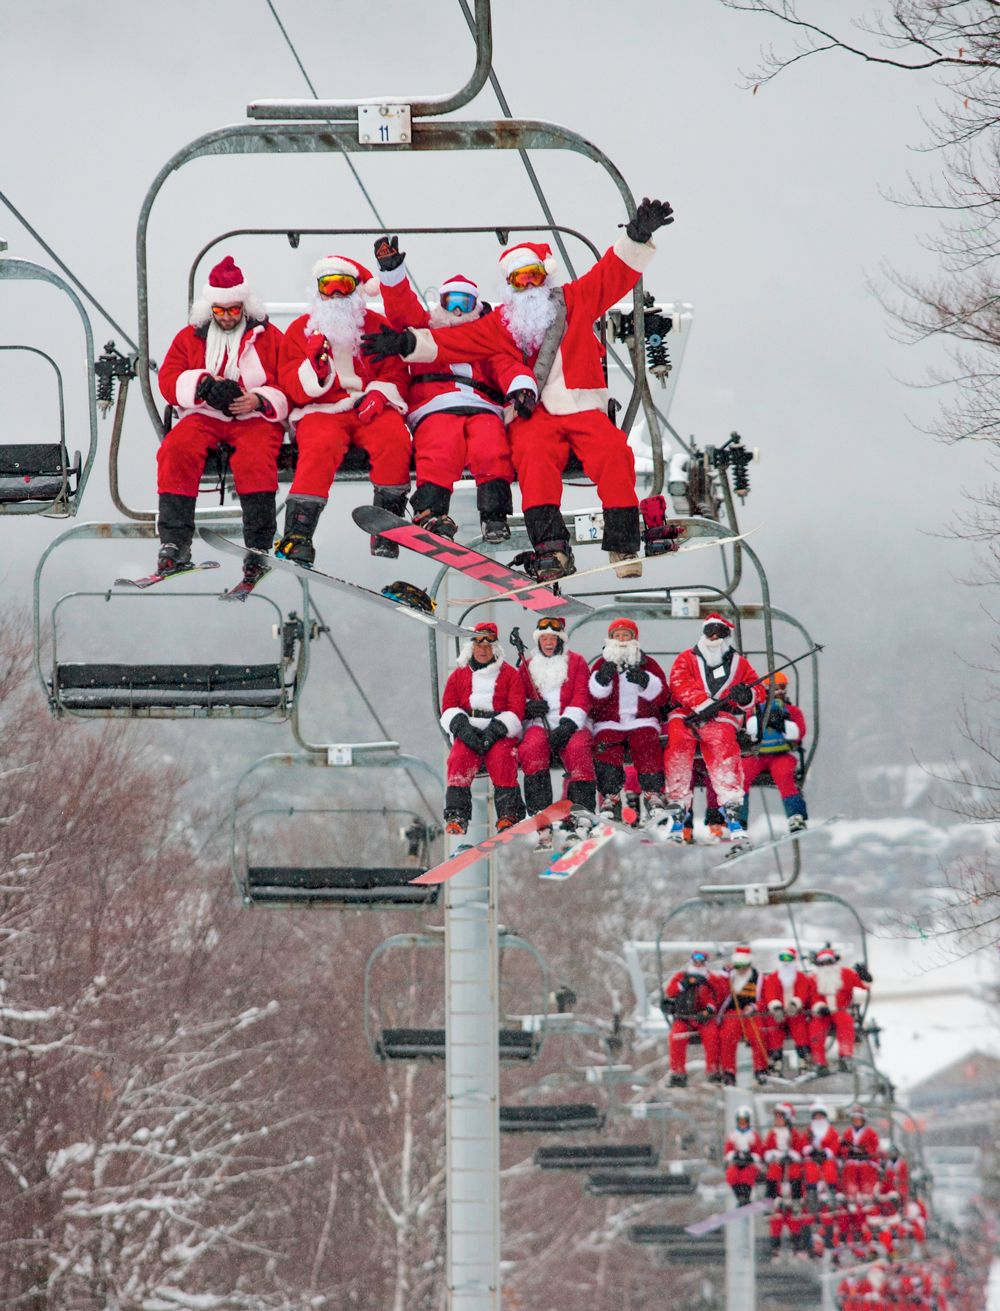 Best New England Holiday Events For 2019 Holidays In England New England Holidays And Events